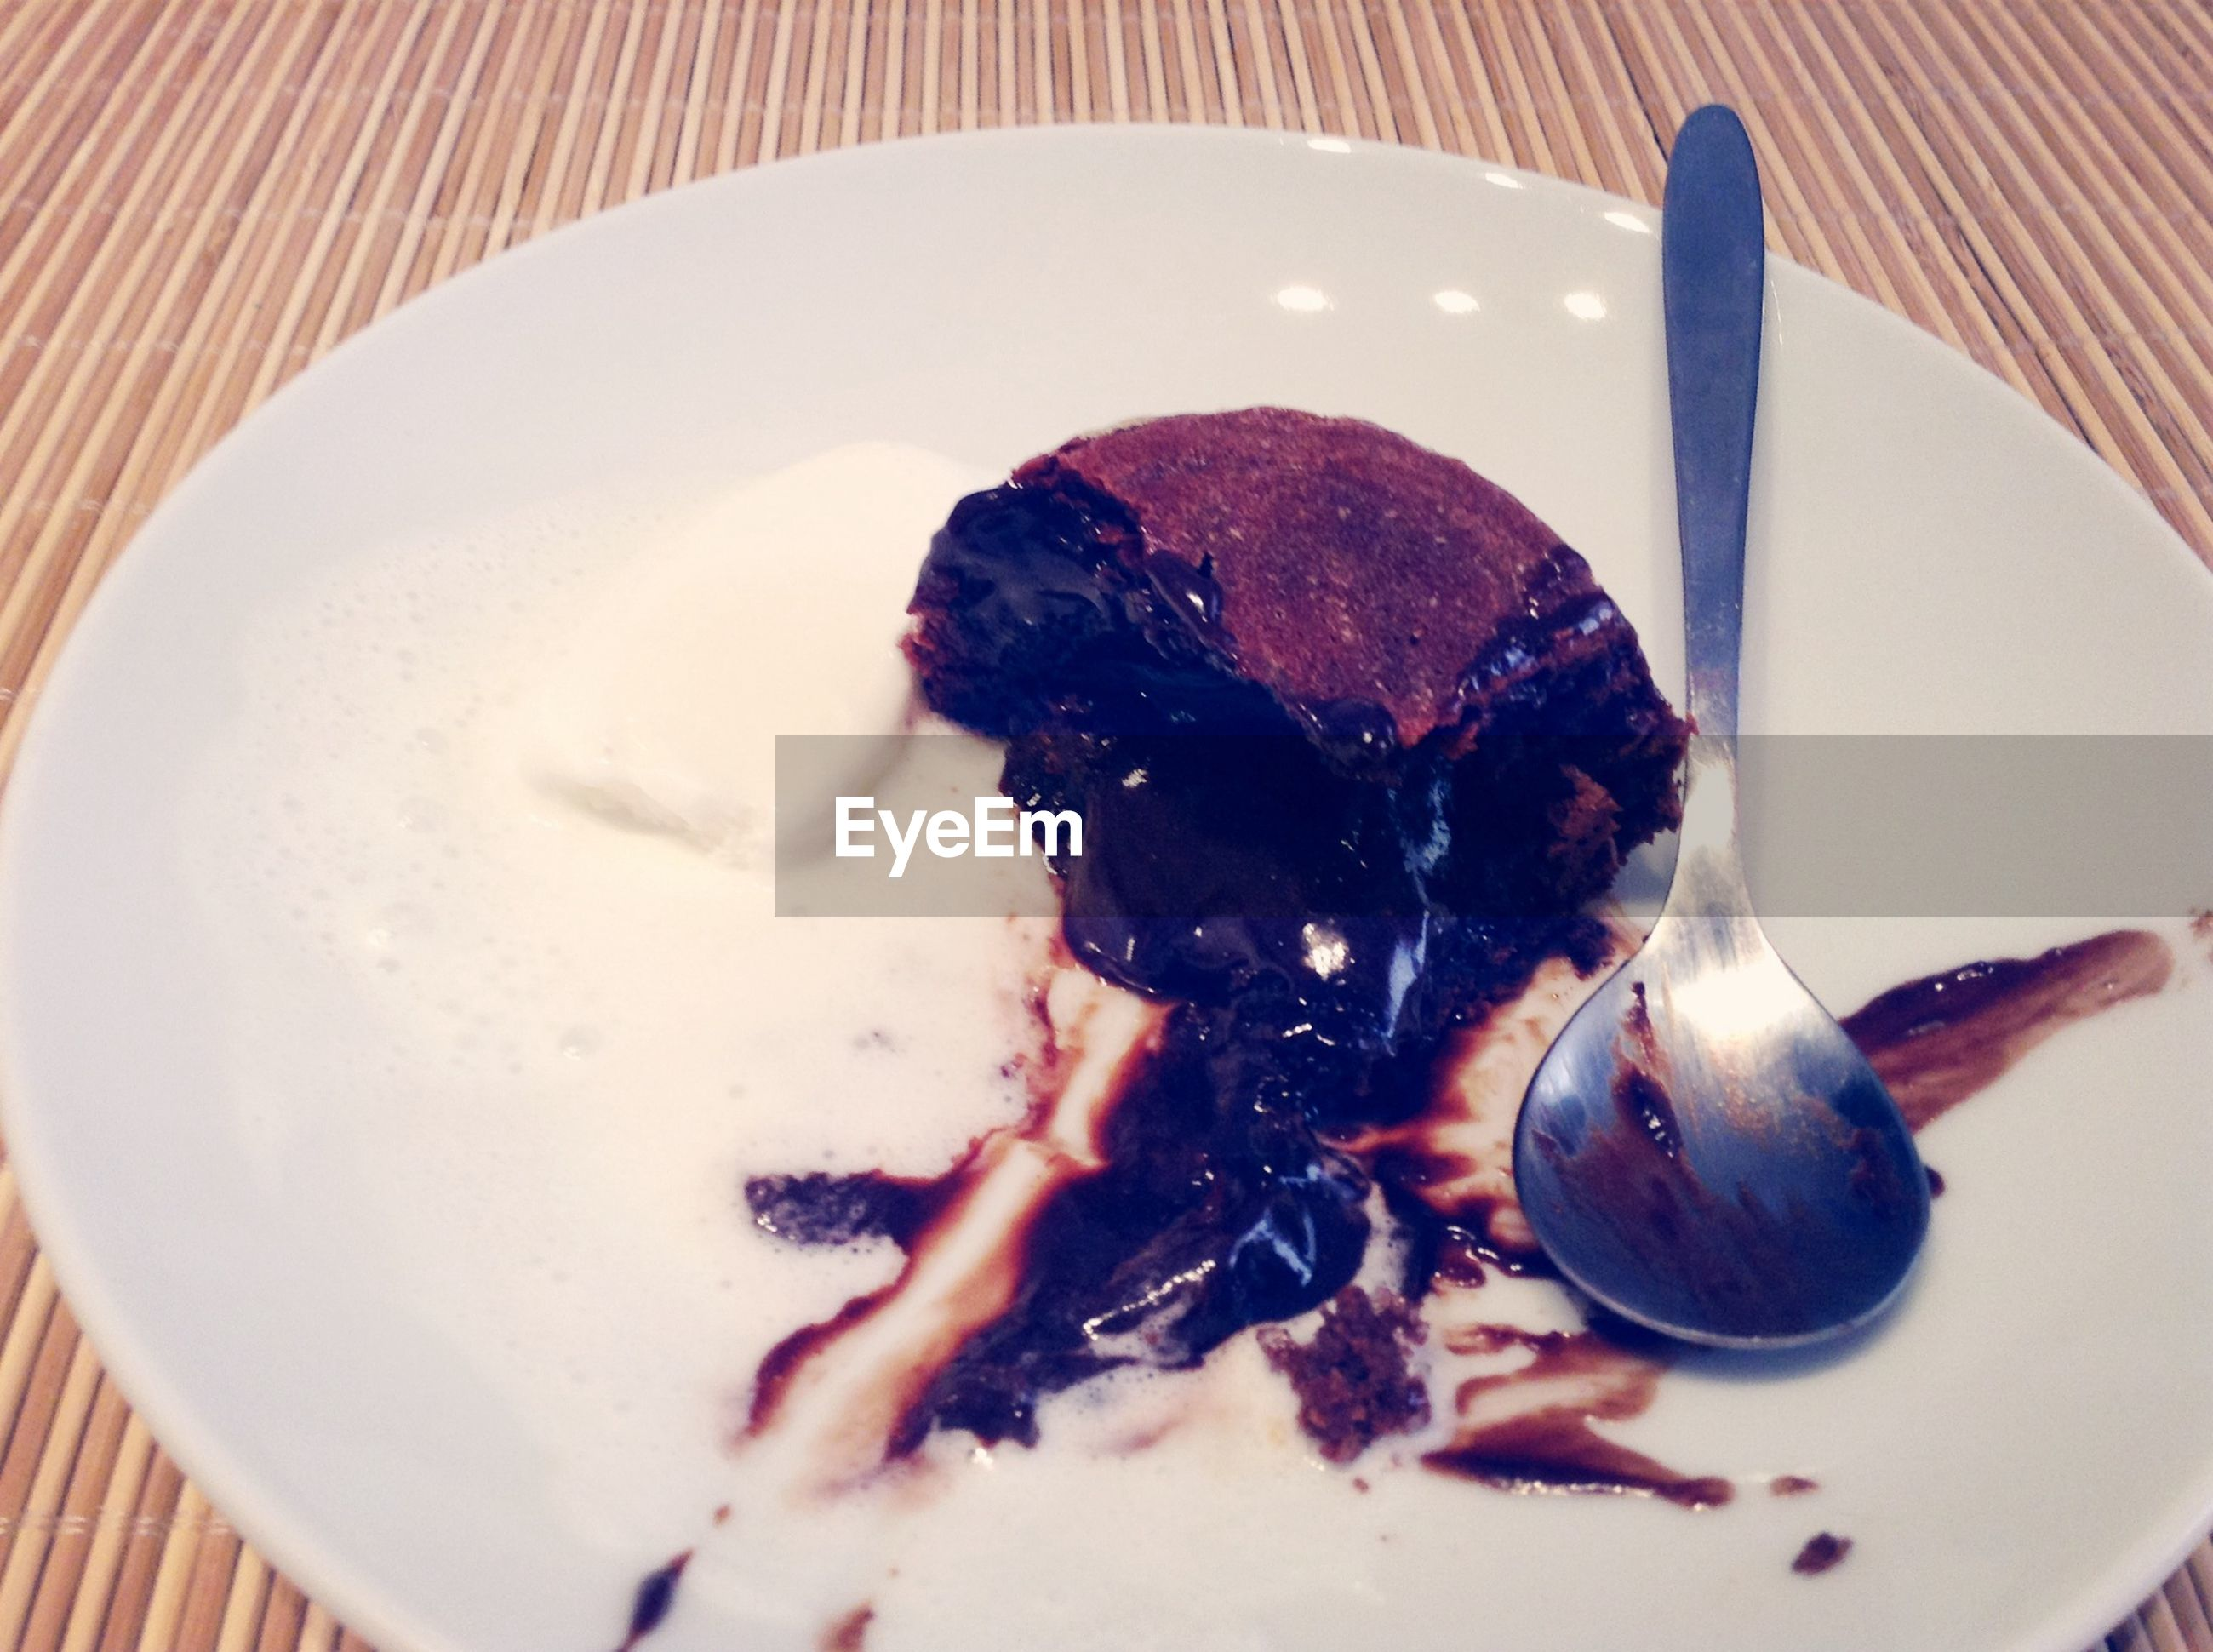 food and drink, food, indoors, sweet food, dessert, freshness, indulgence, plate, ready-to-eat, ice cream, high angle view, frozen food, one person, close-up, unhealthy eating, temptation, cake, spoon, chocolate, holding